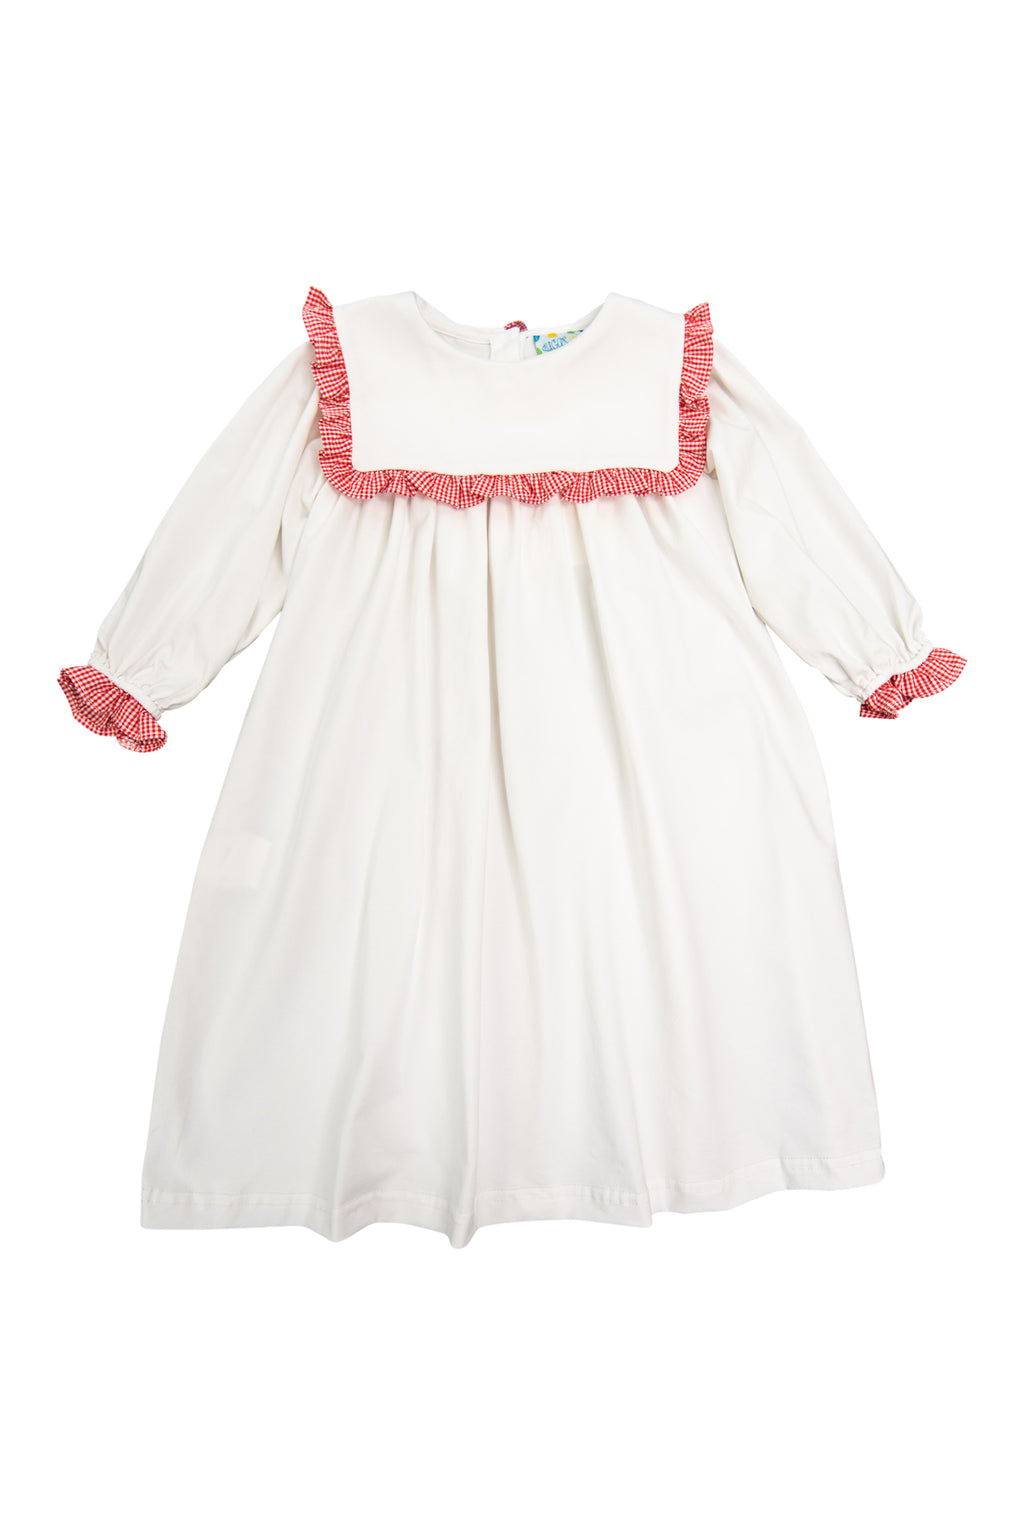 Girls White Square Collar Heirloom Length Nightgown